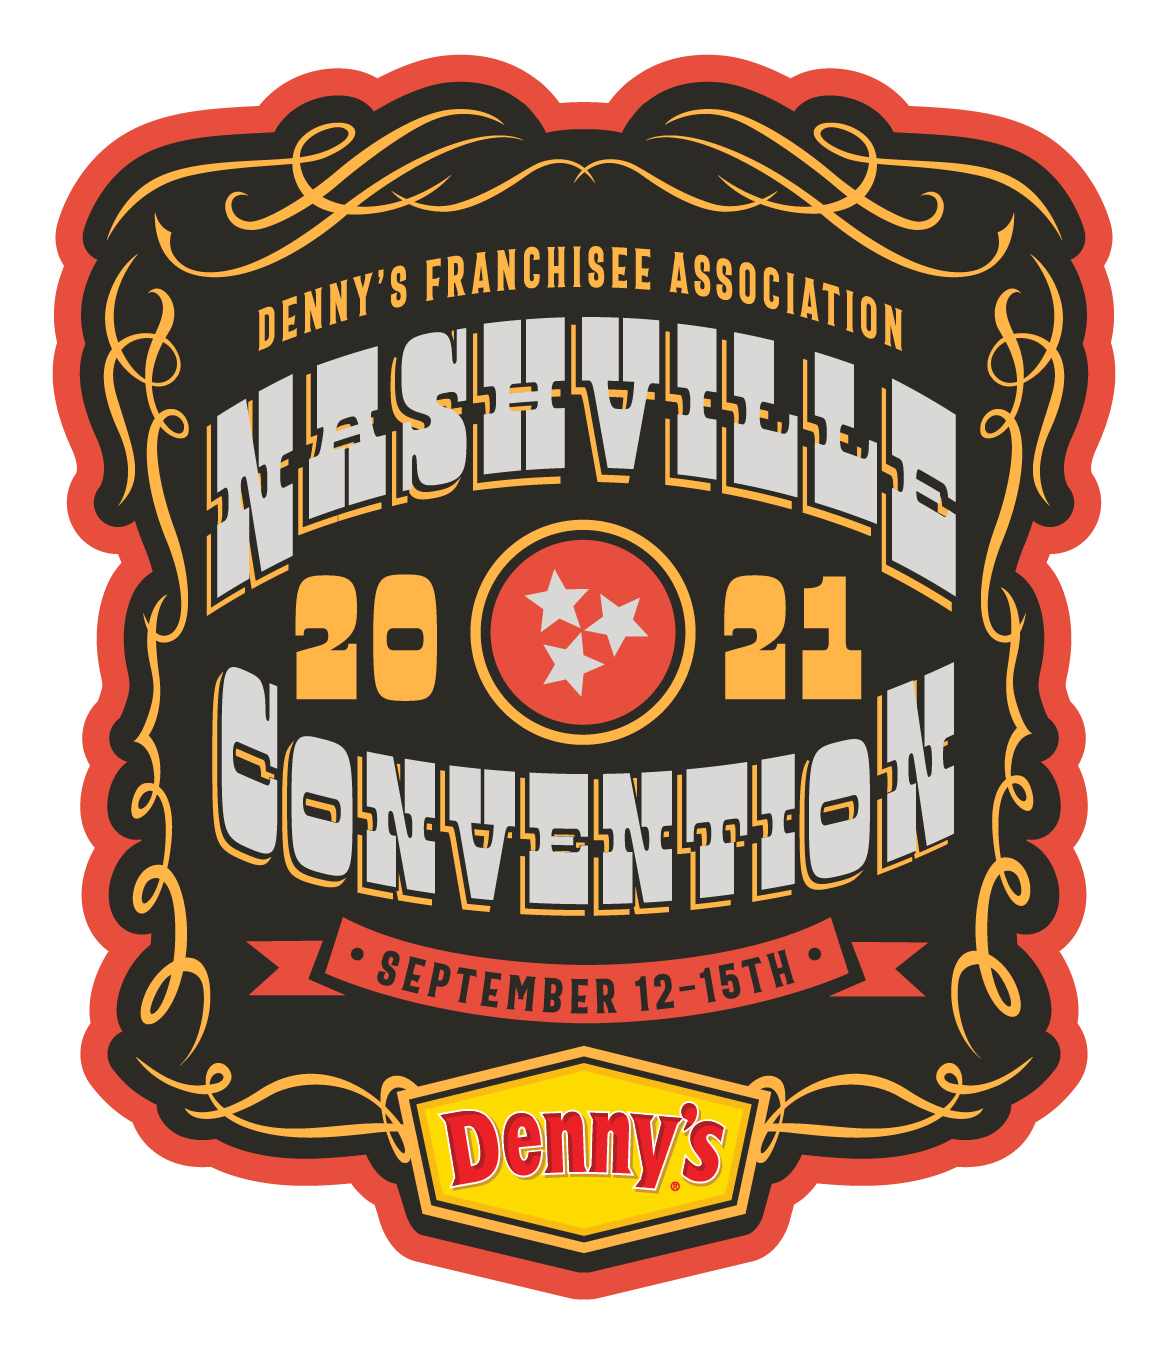 2022 Convention Registration is Open!